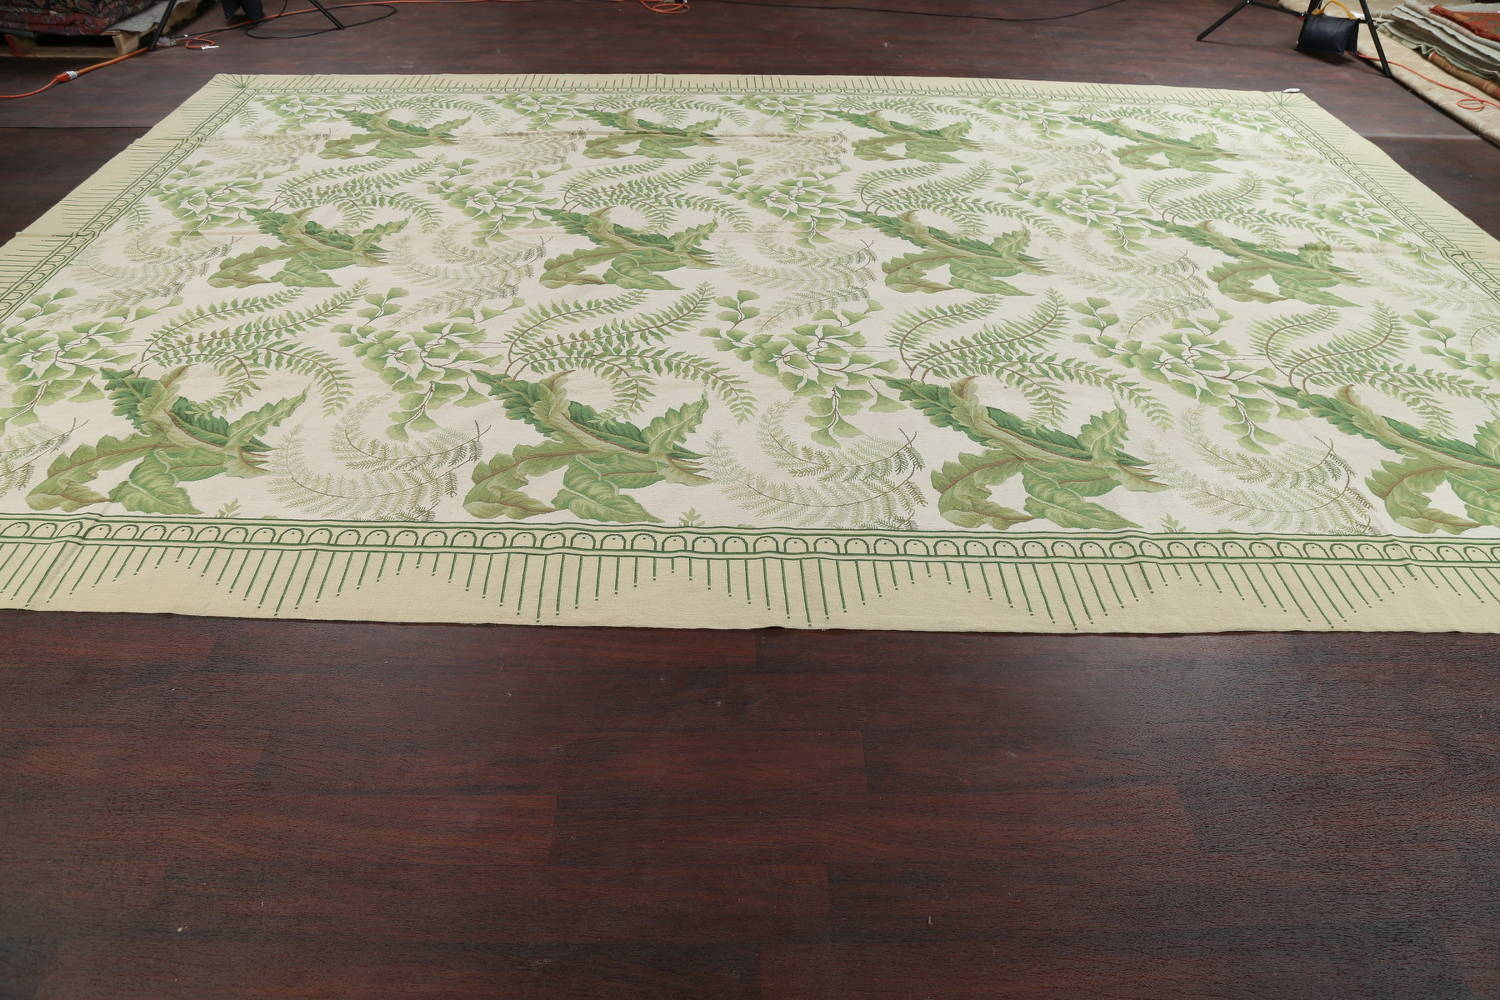 Mansion Floral Green Aubusson Savonnerie Needle-Point Chinese Wool Rug 11x16 image 13